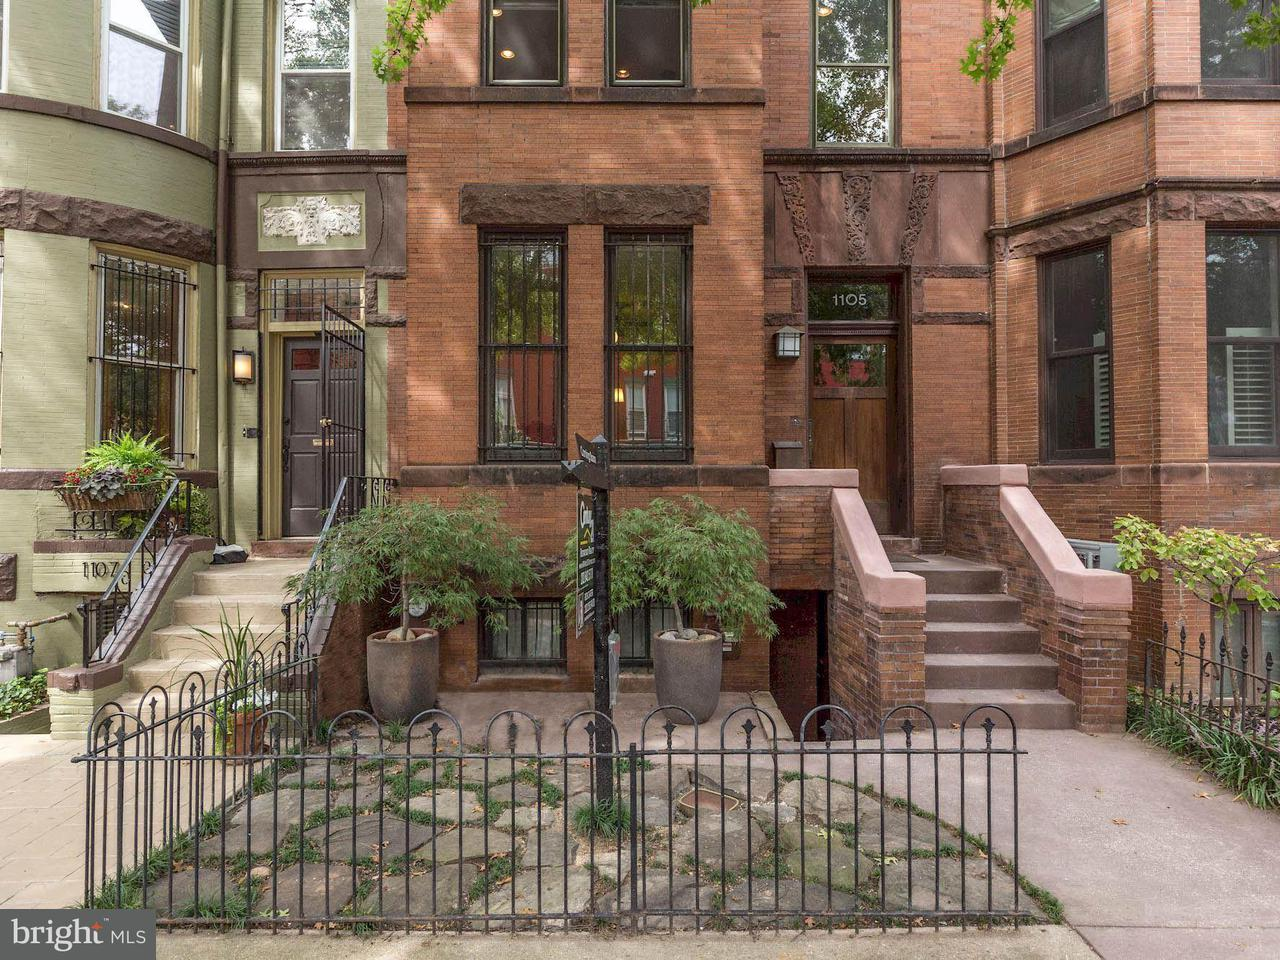 Multi-Family Home for Sale at 1105 P ST NW 1105 P ST NW Washington, District Of Columbia 20005 United States